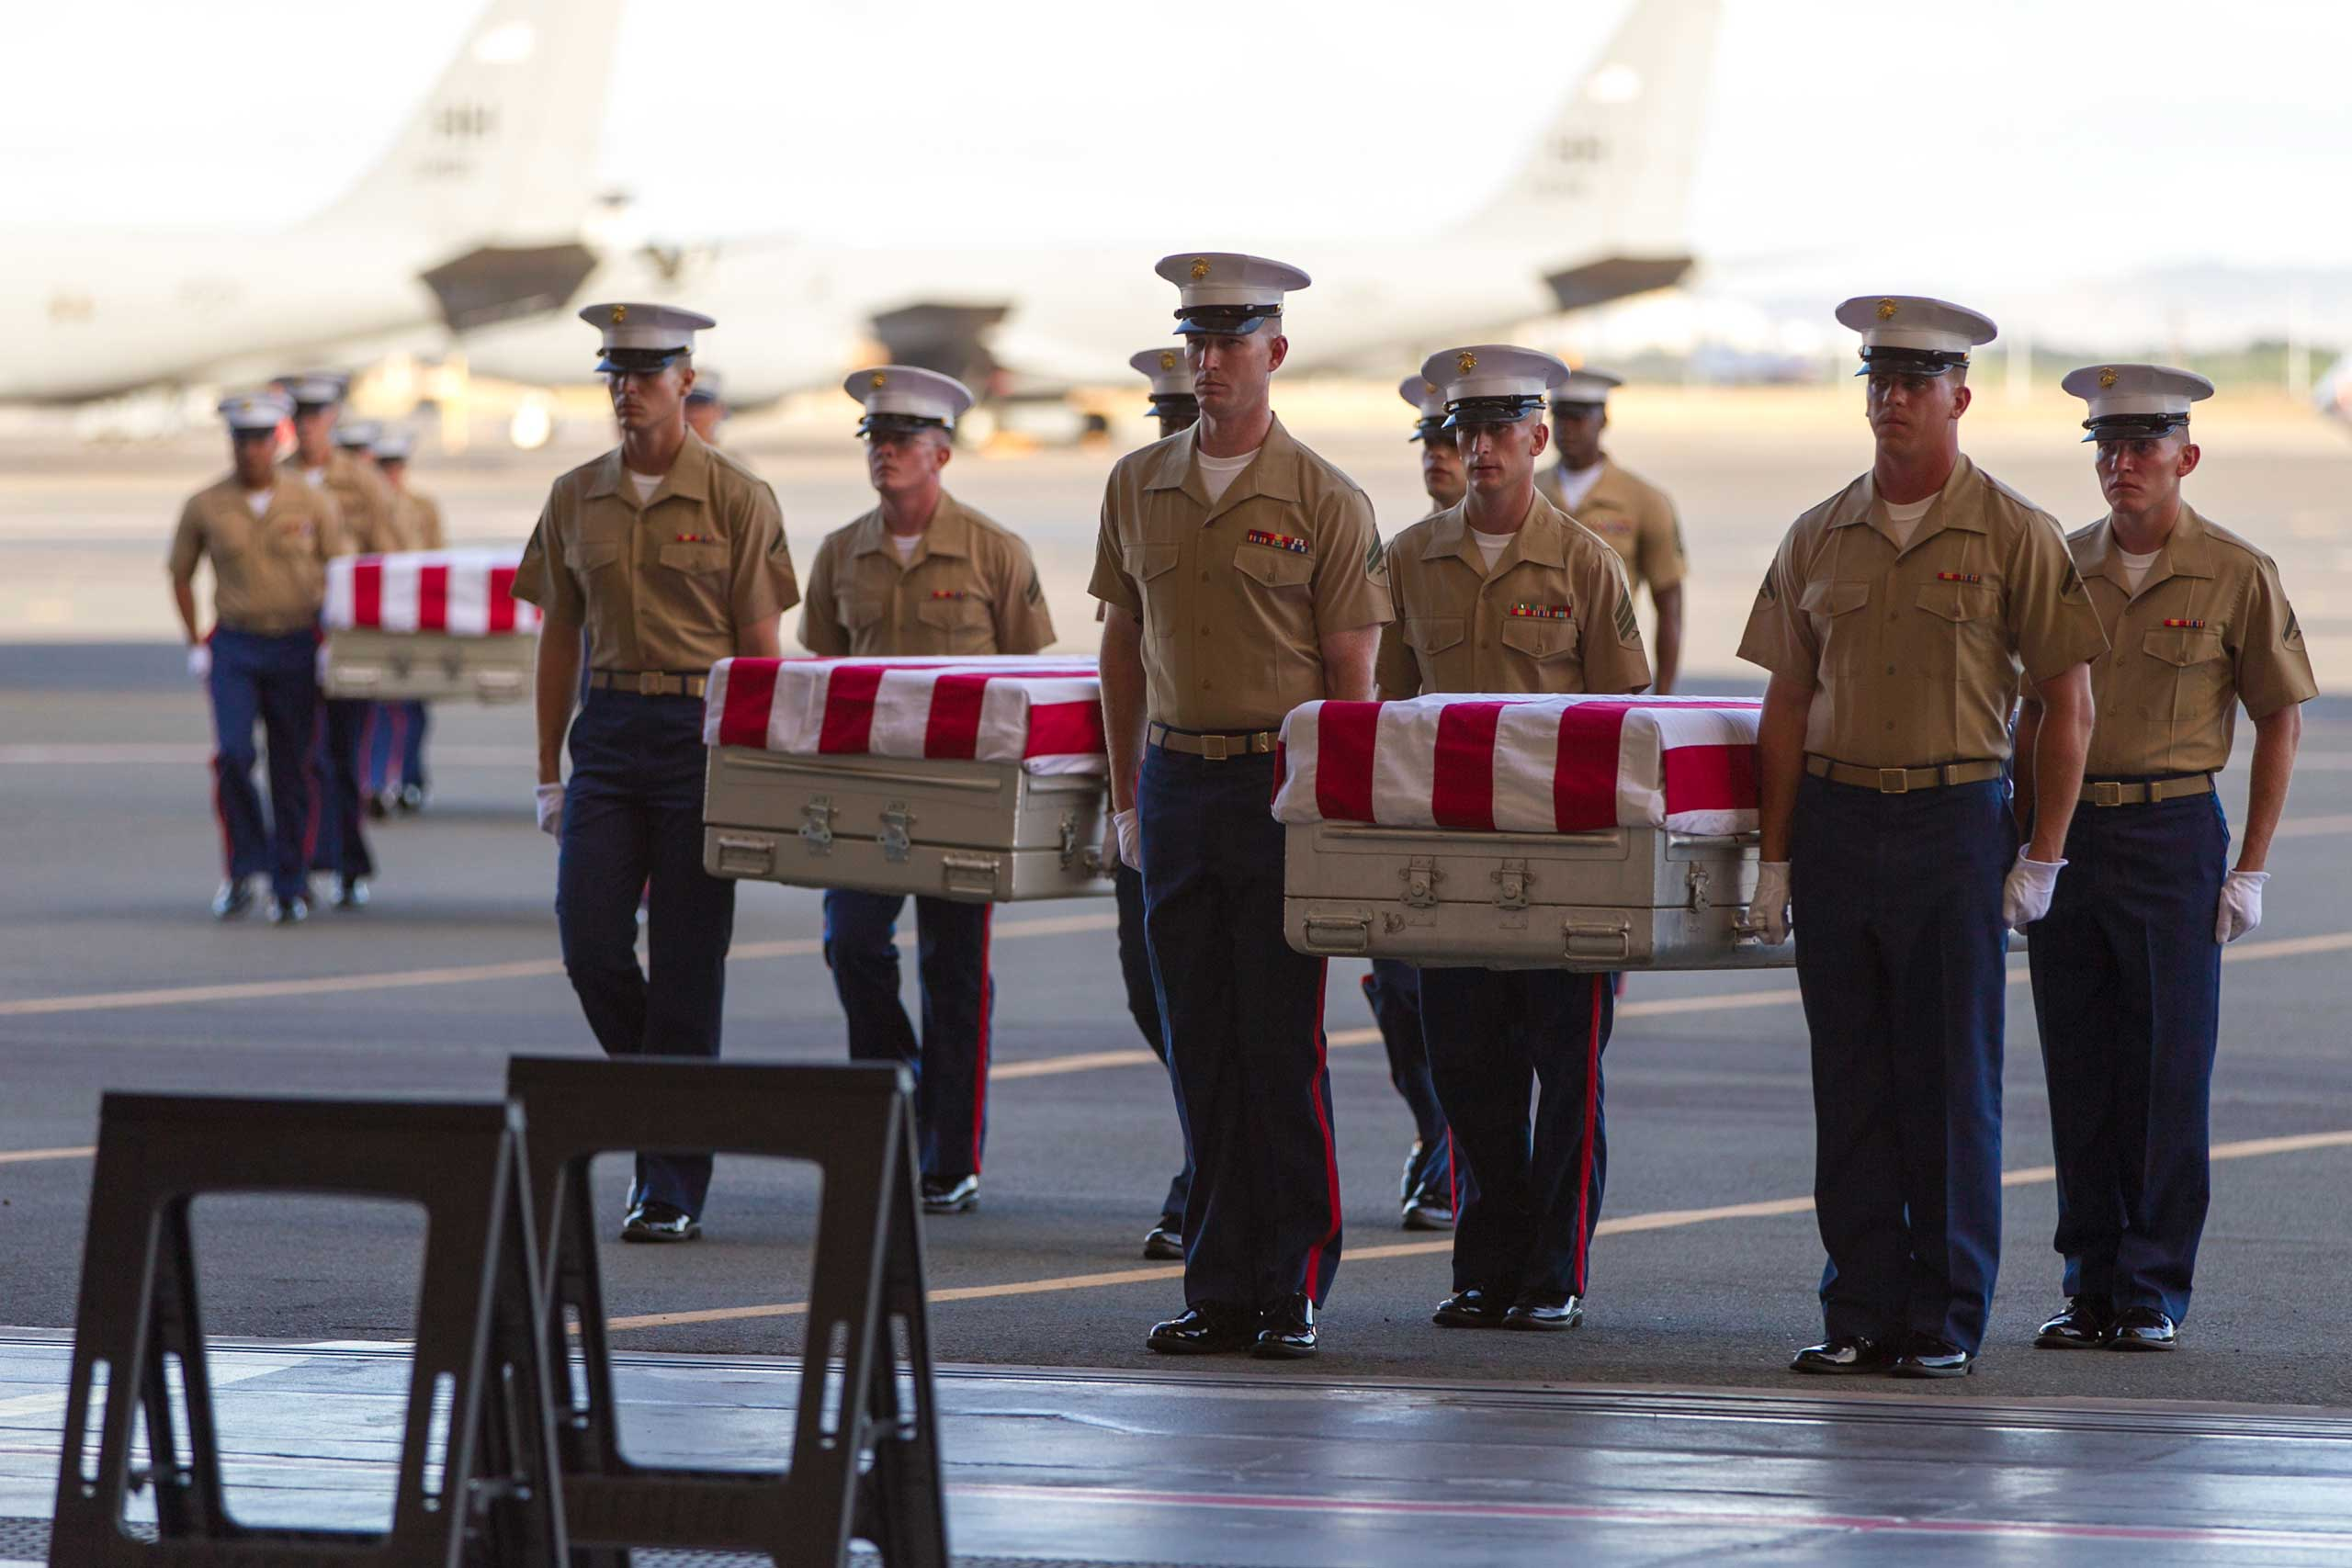 U.S. Marines carry the remains of 36 unidentified Marines found at a World War II battlefield during a ceremony at Joint Base Pearl Harbor-Hickam, July 26, 2015, in Honolulu.